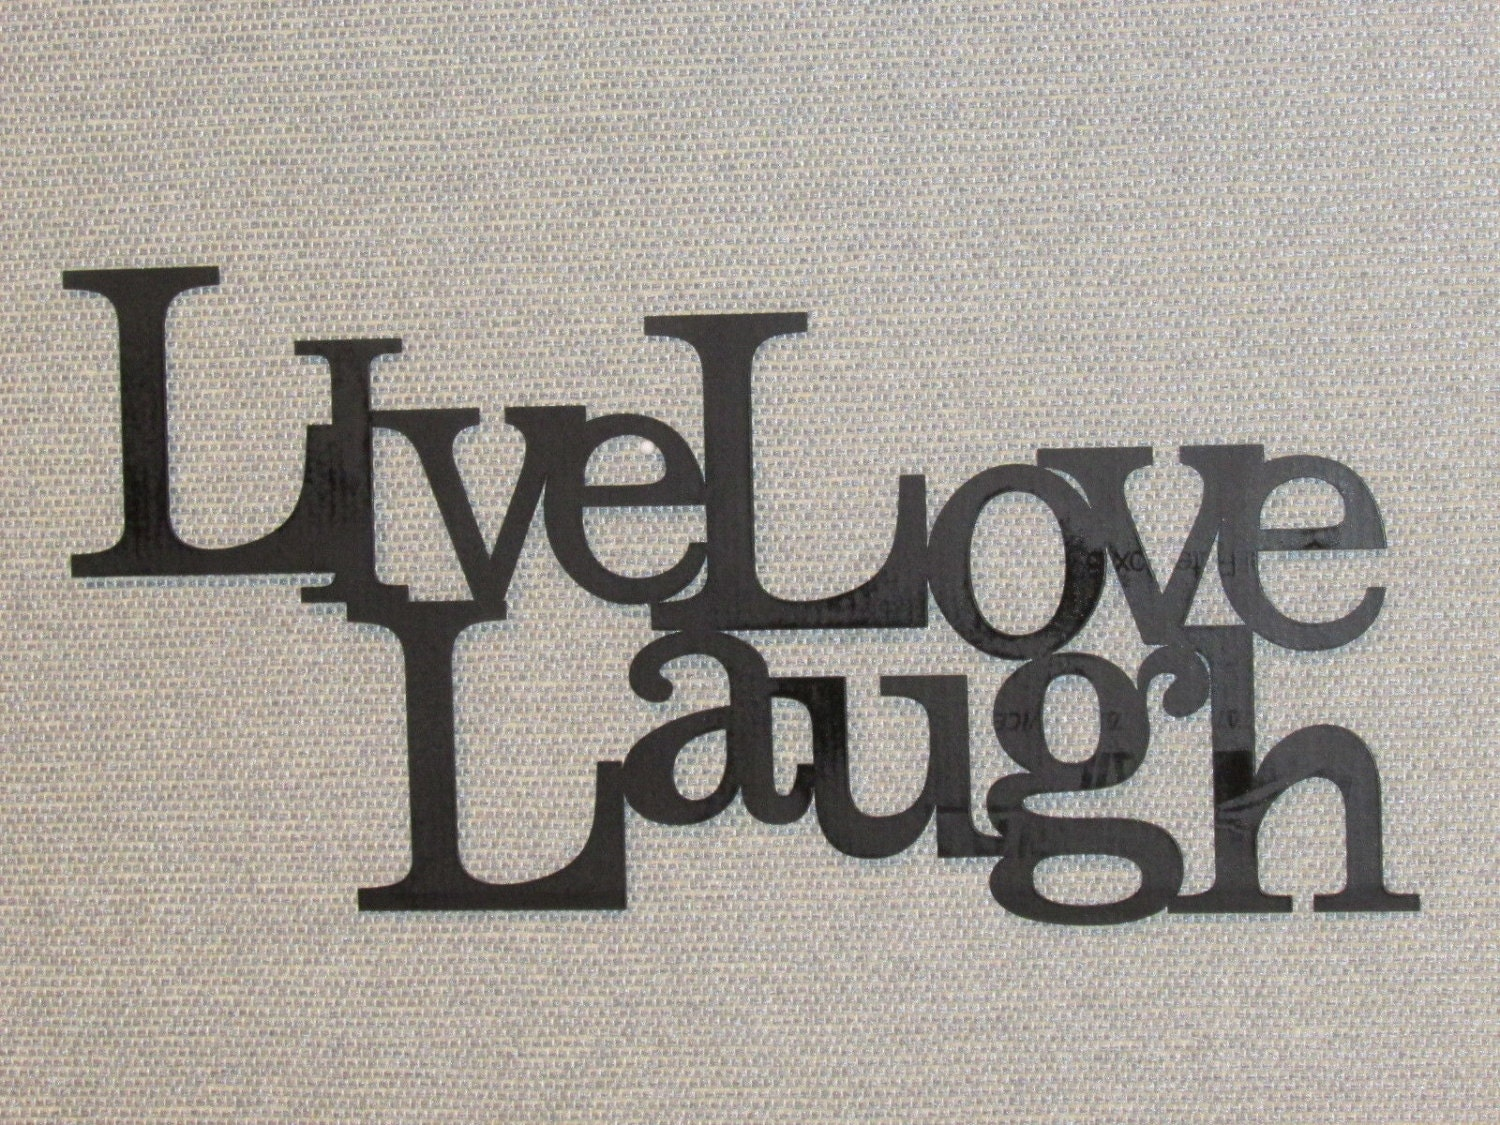 Live laugh love wood word art sign wall decor black for Live laugh love wall art